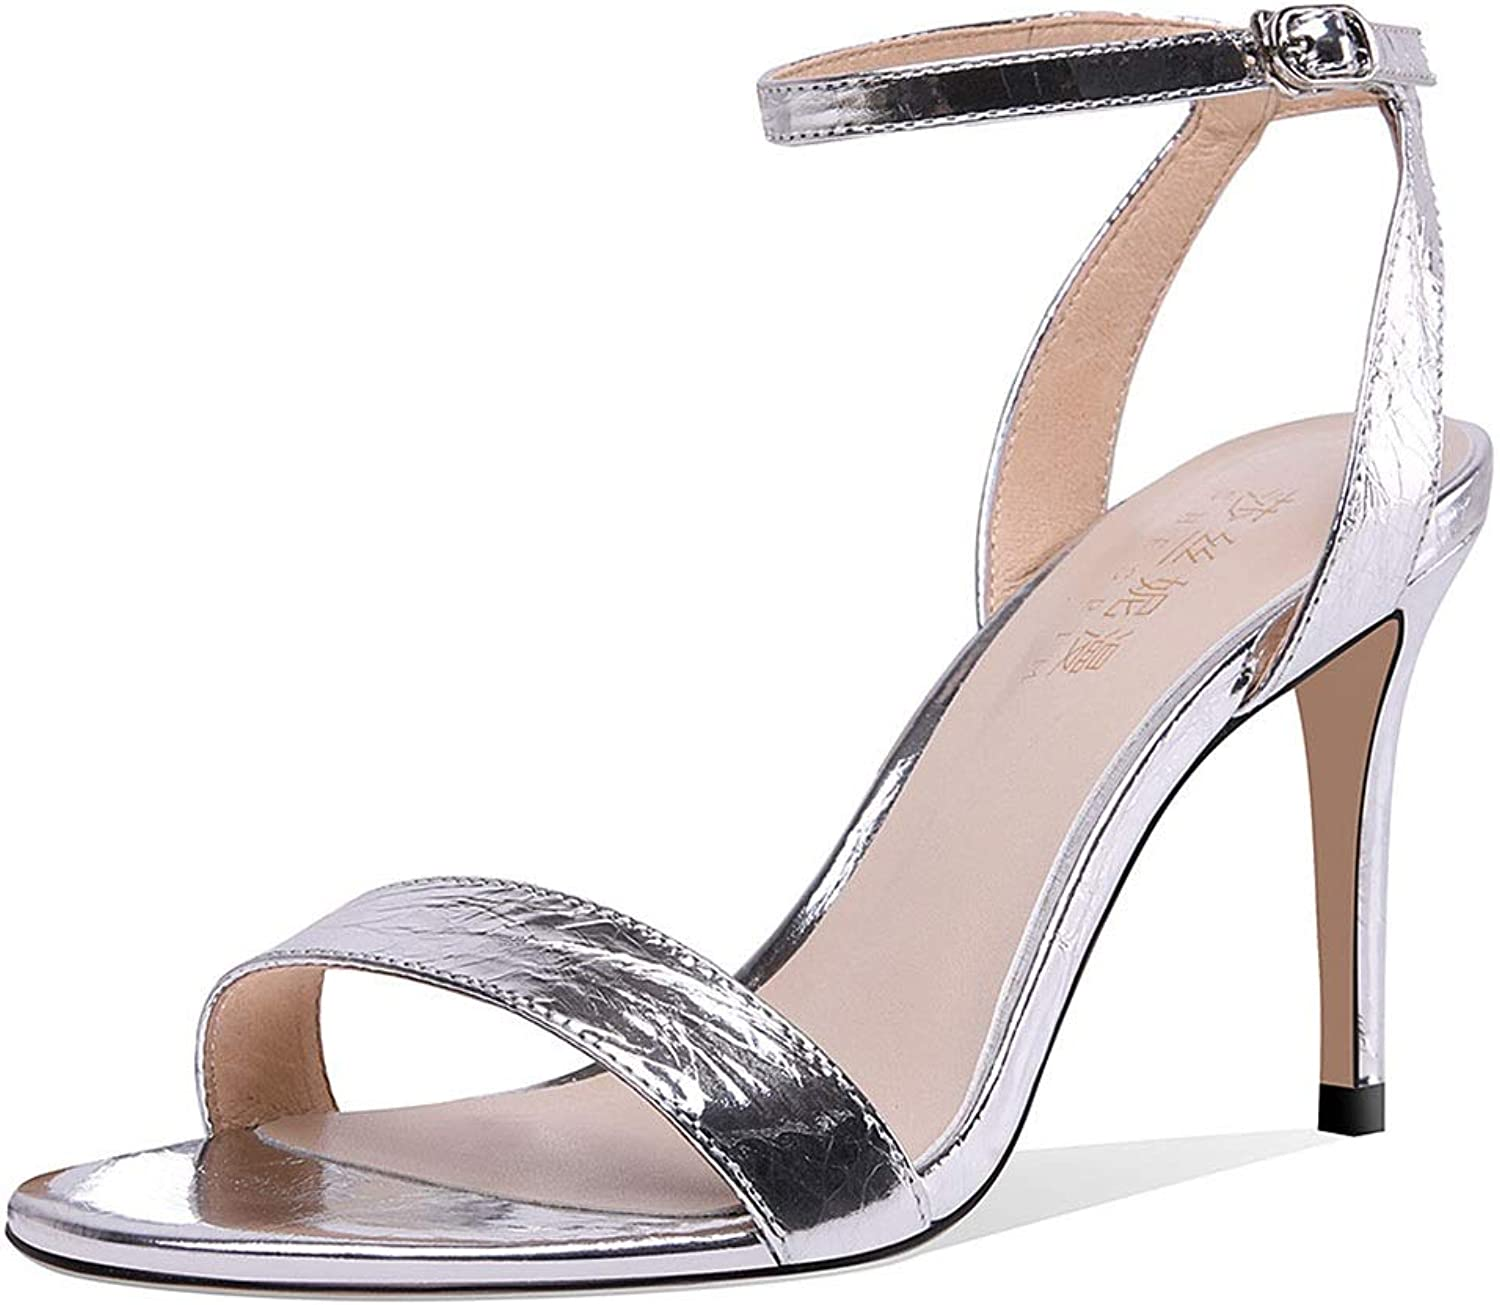 High Heels Women's sandals high Heels fine with 8cm sandals Word Buckle with Open Toe high Heels Very not Tired shoes Ladies sandals (color   Silver, Size   35)